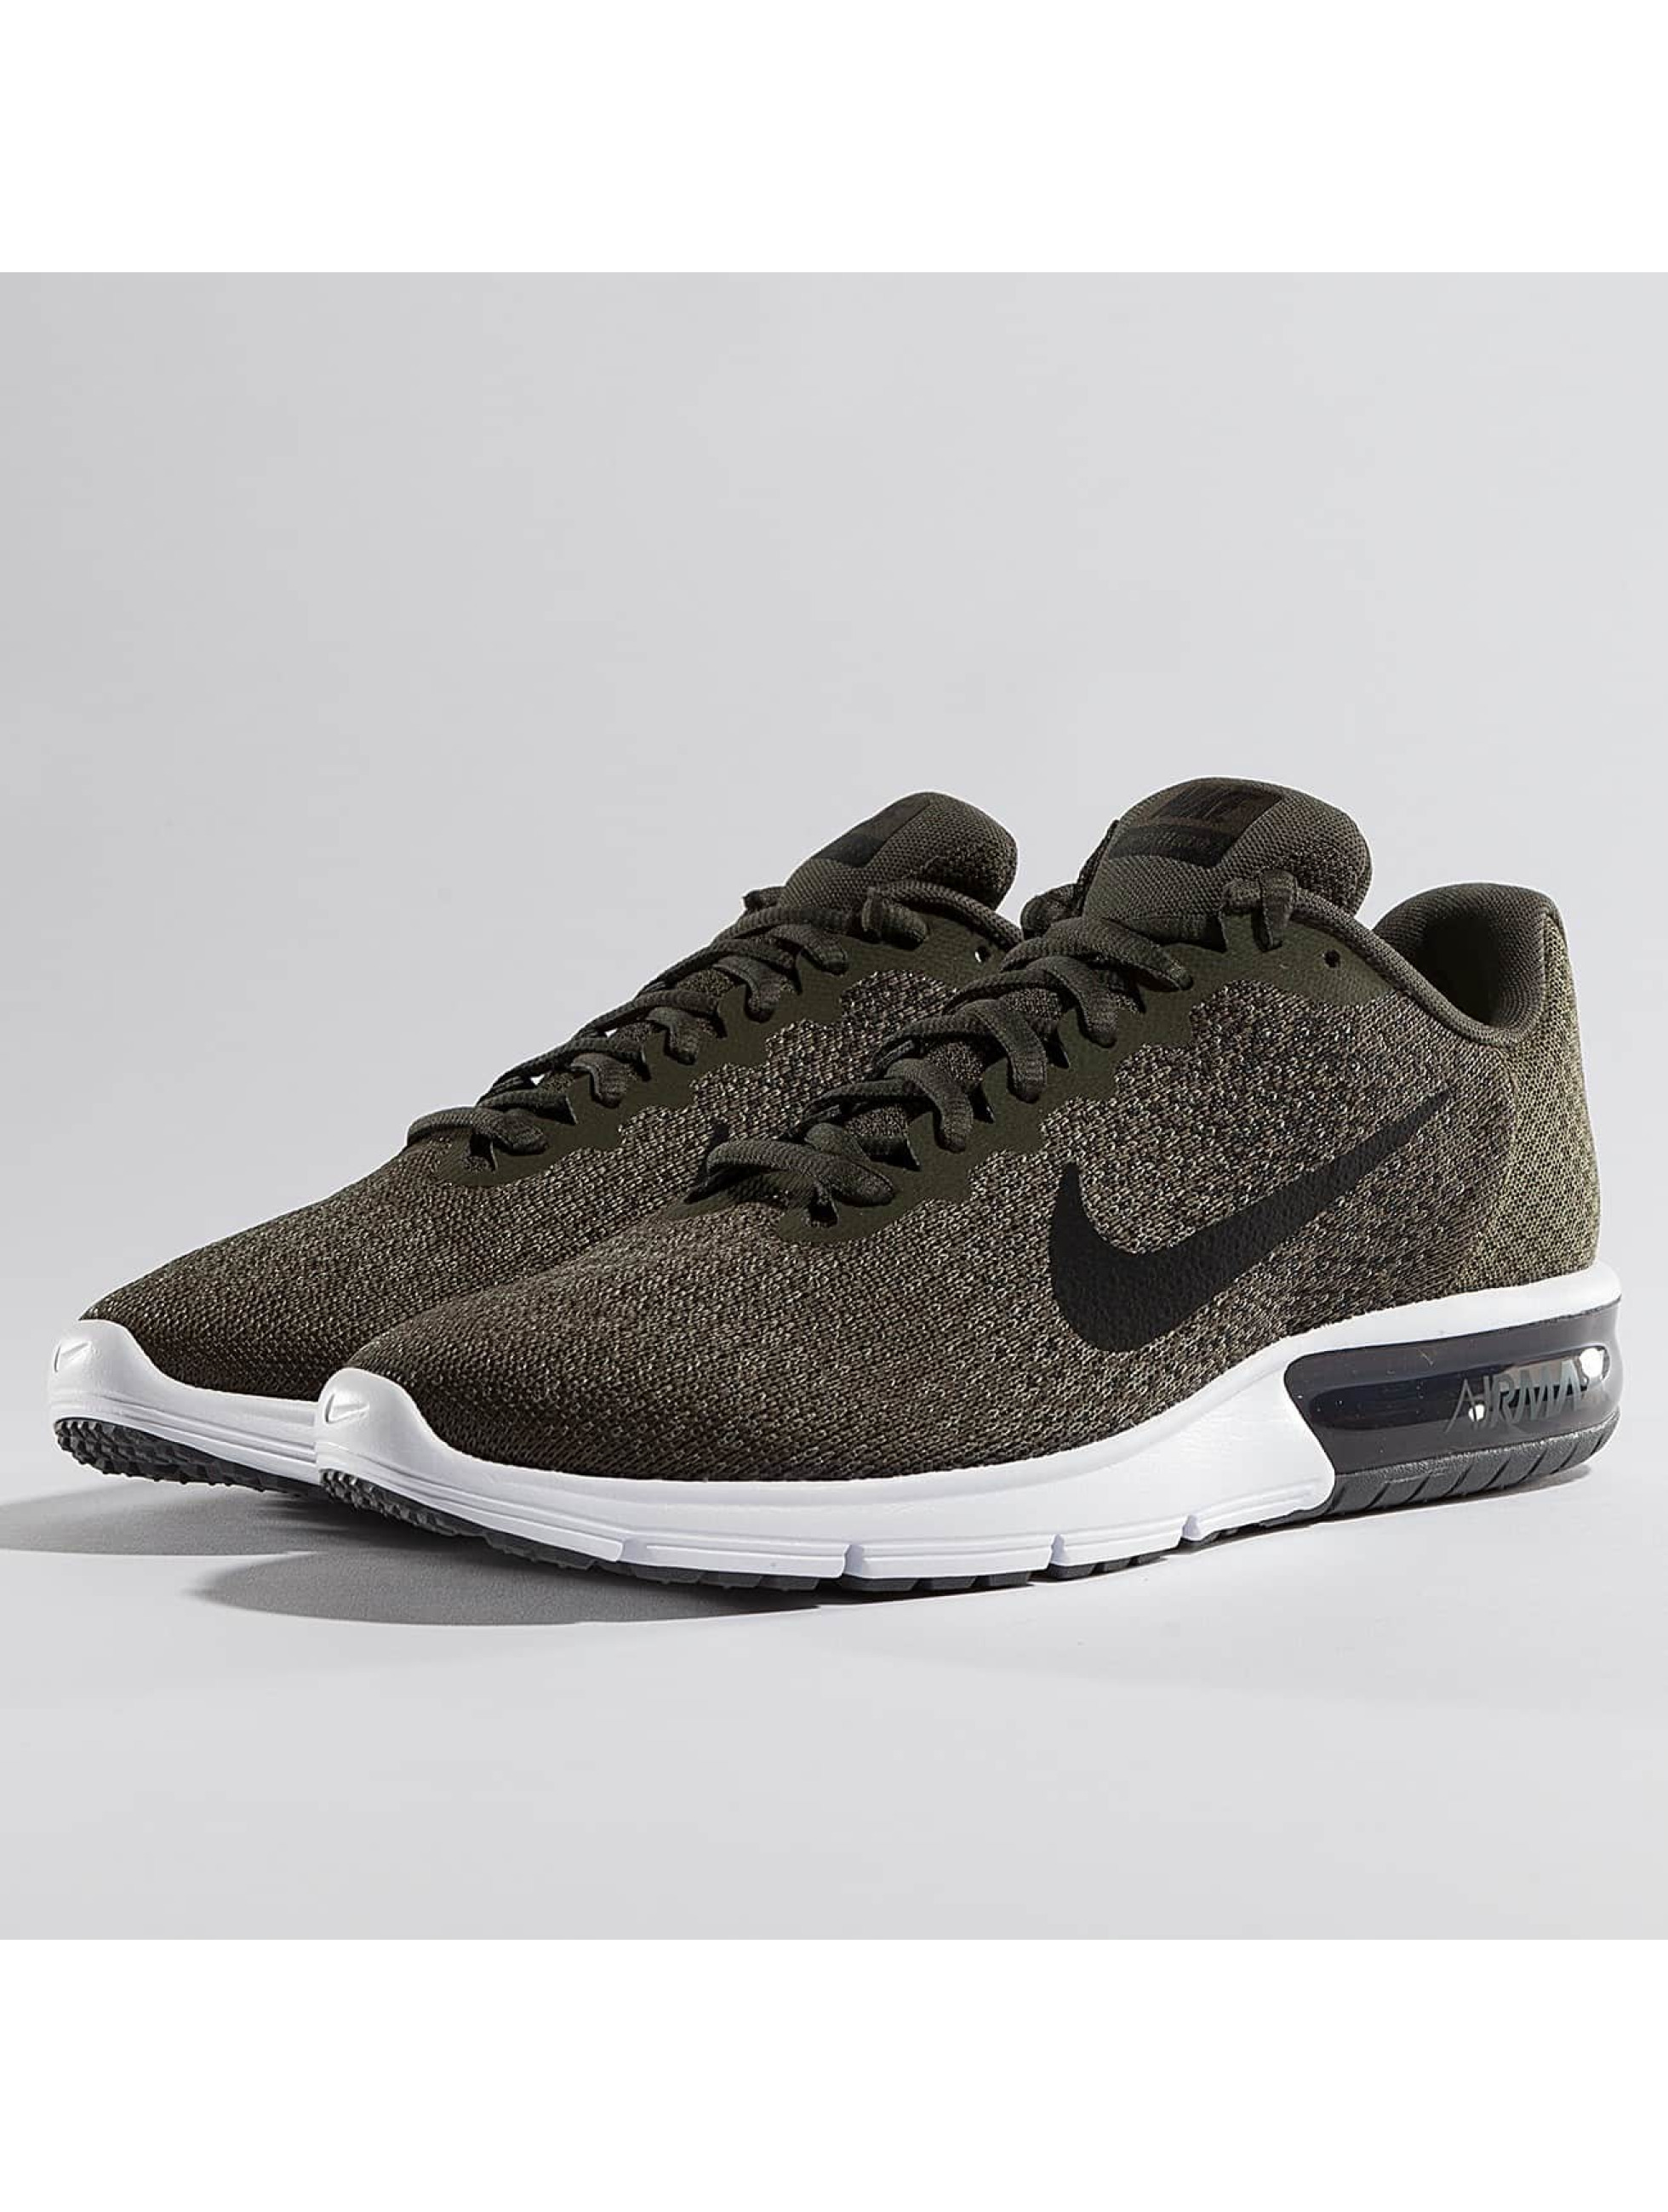 nike air max sequent 2 kaki homme baskets nike acheter pas cher chaussures 334016. Black Bedroom Furniture Sets. Home Design Ideas